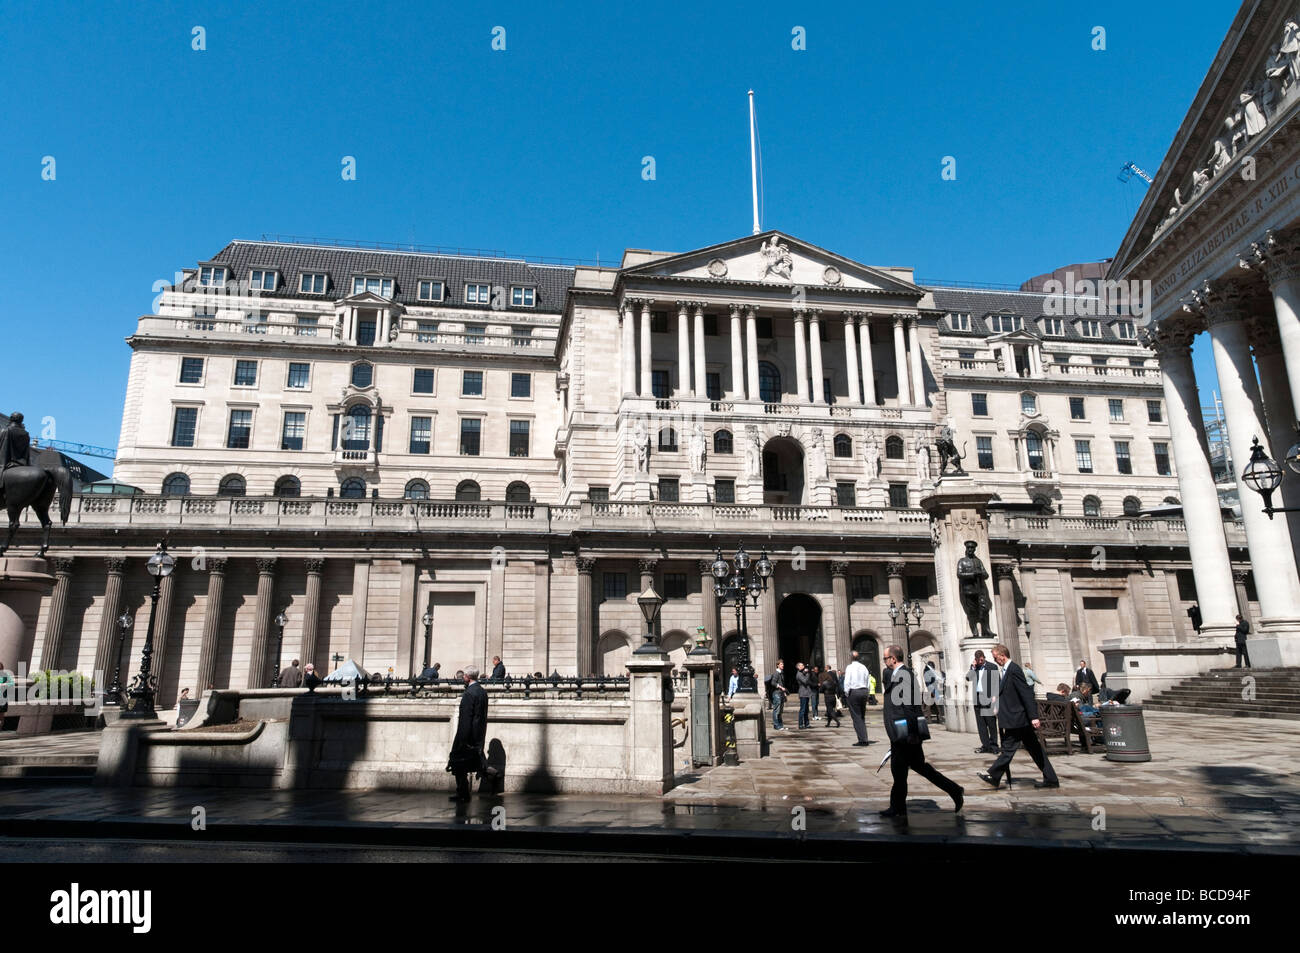 The Bank of England in the City of London, UK - Stock Image